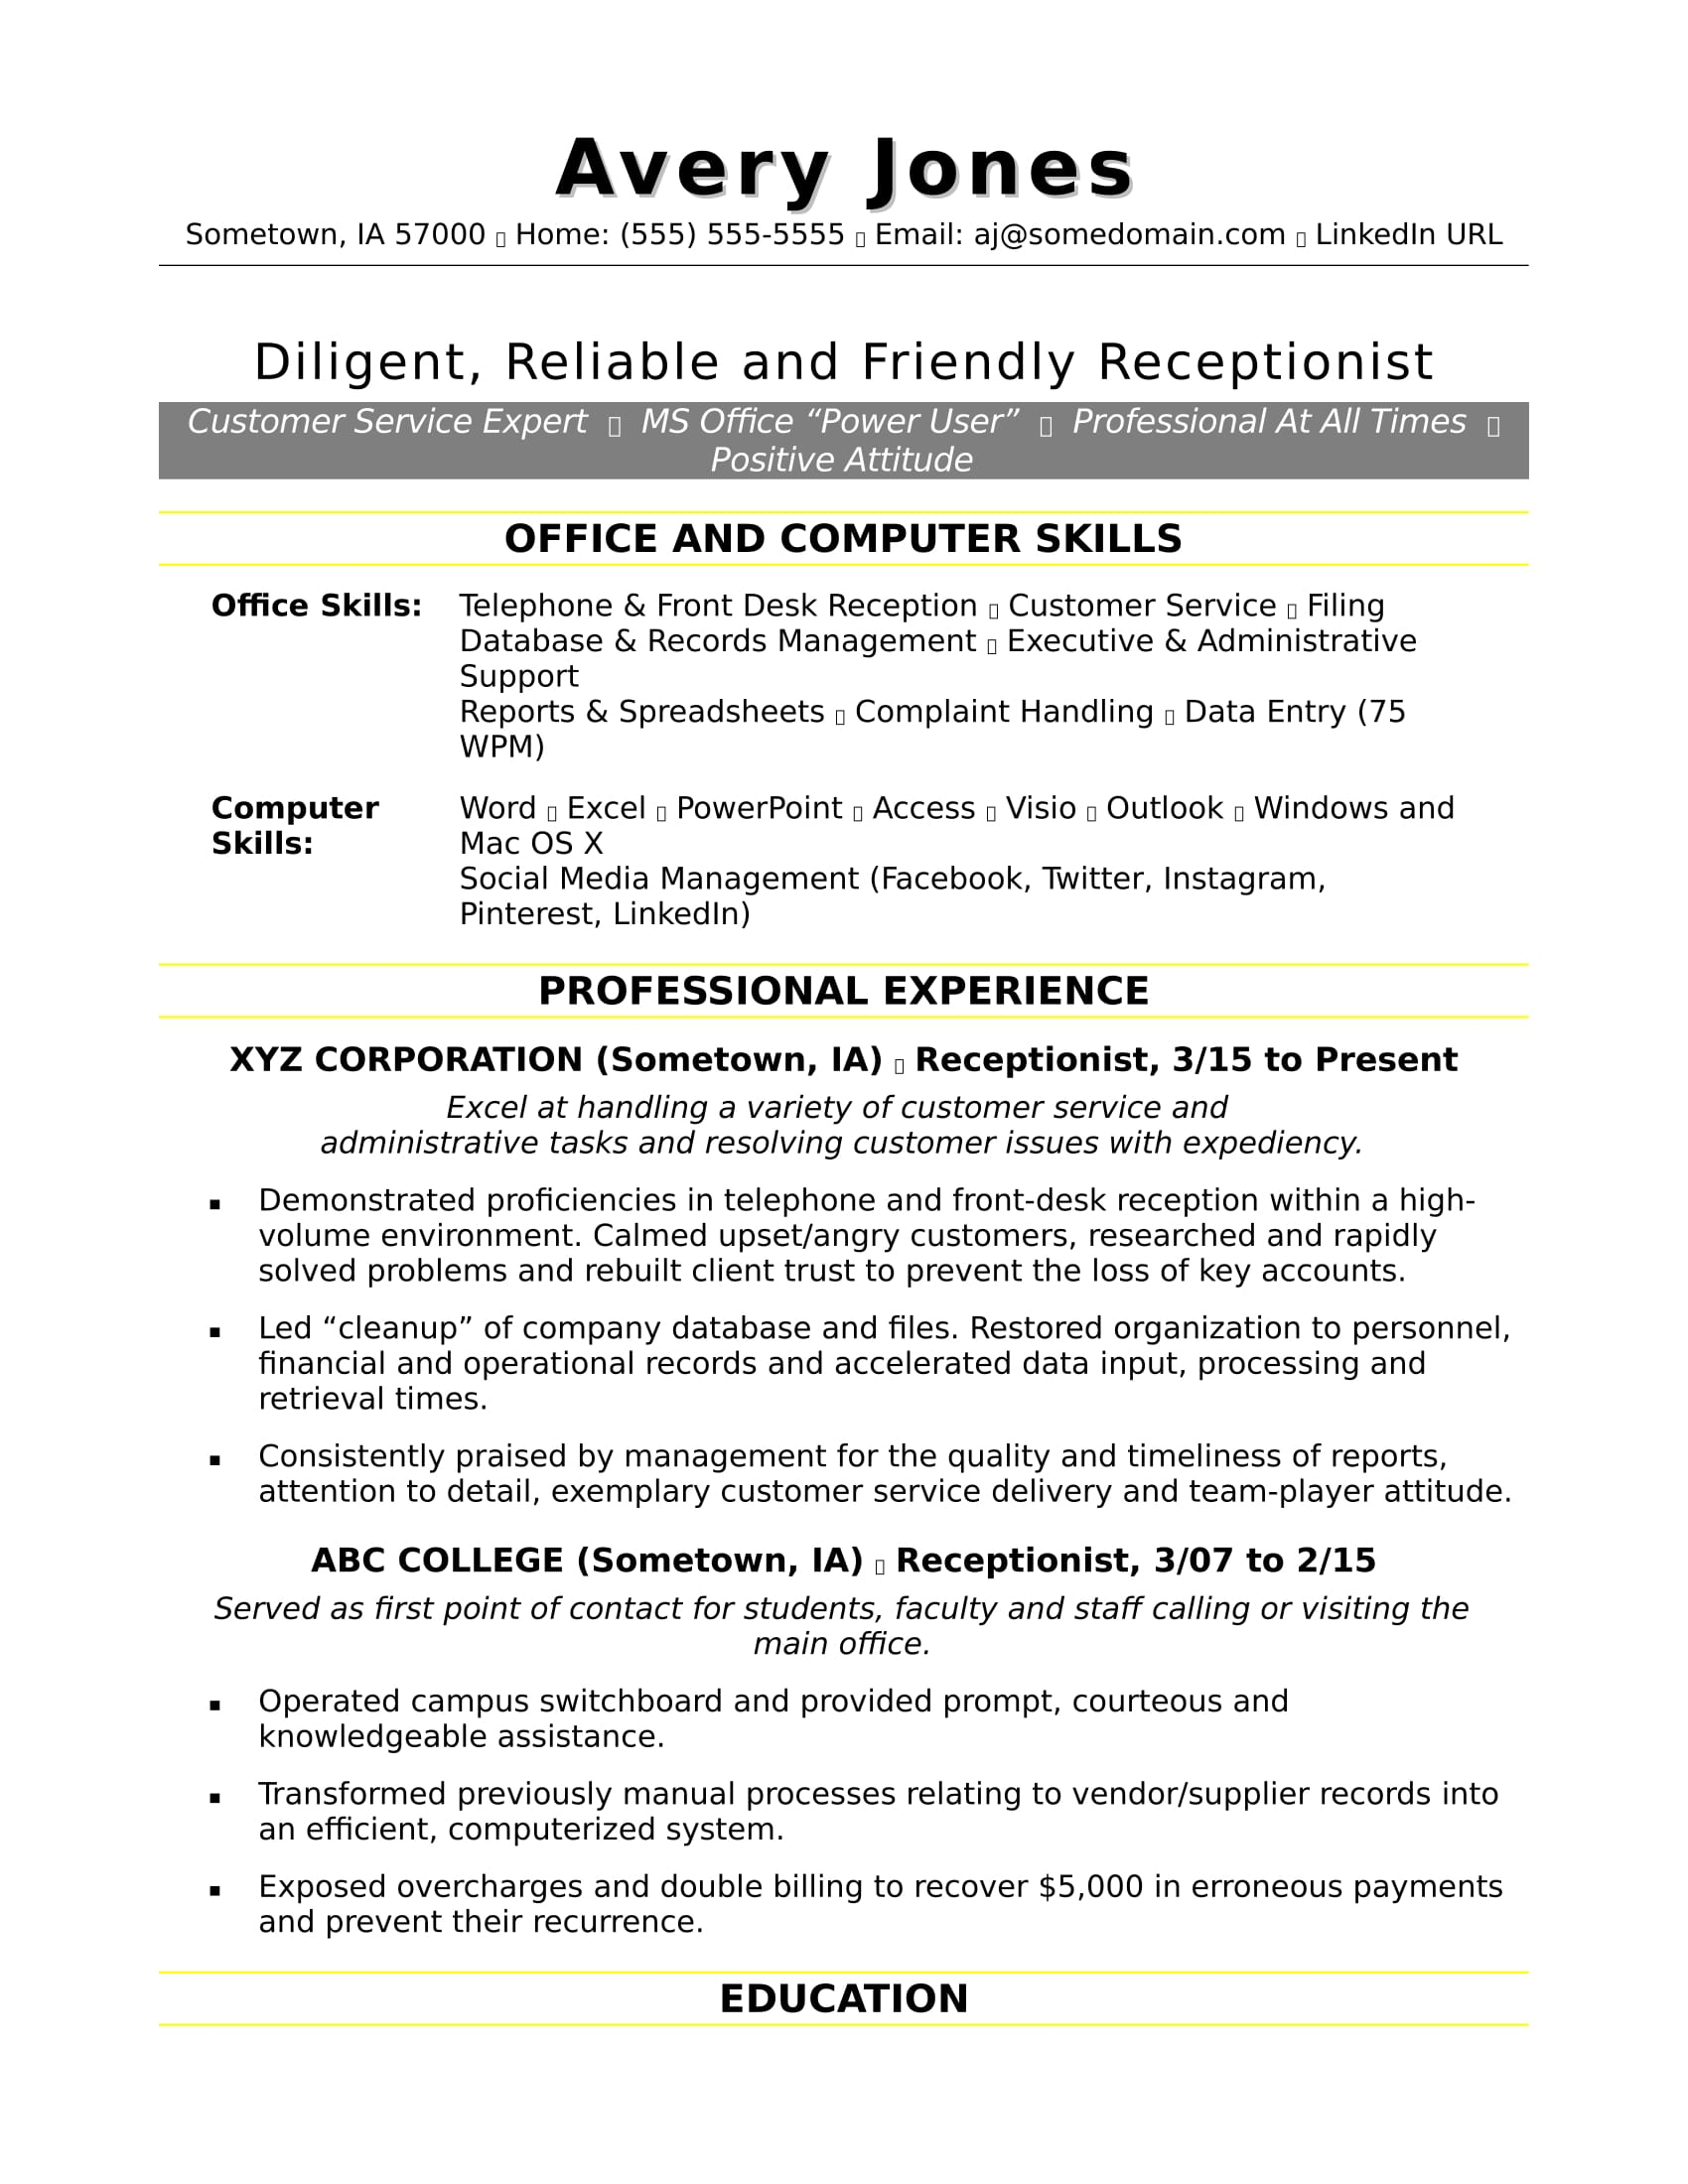 sample resume for a receptionist - Data Entry Resume Sample Skills